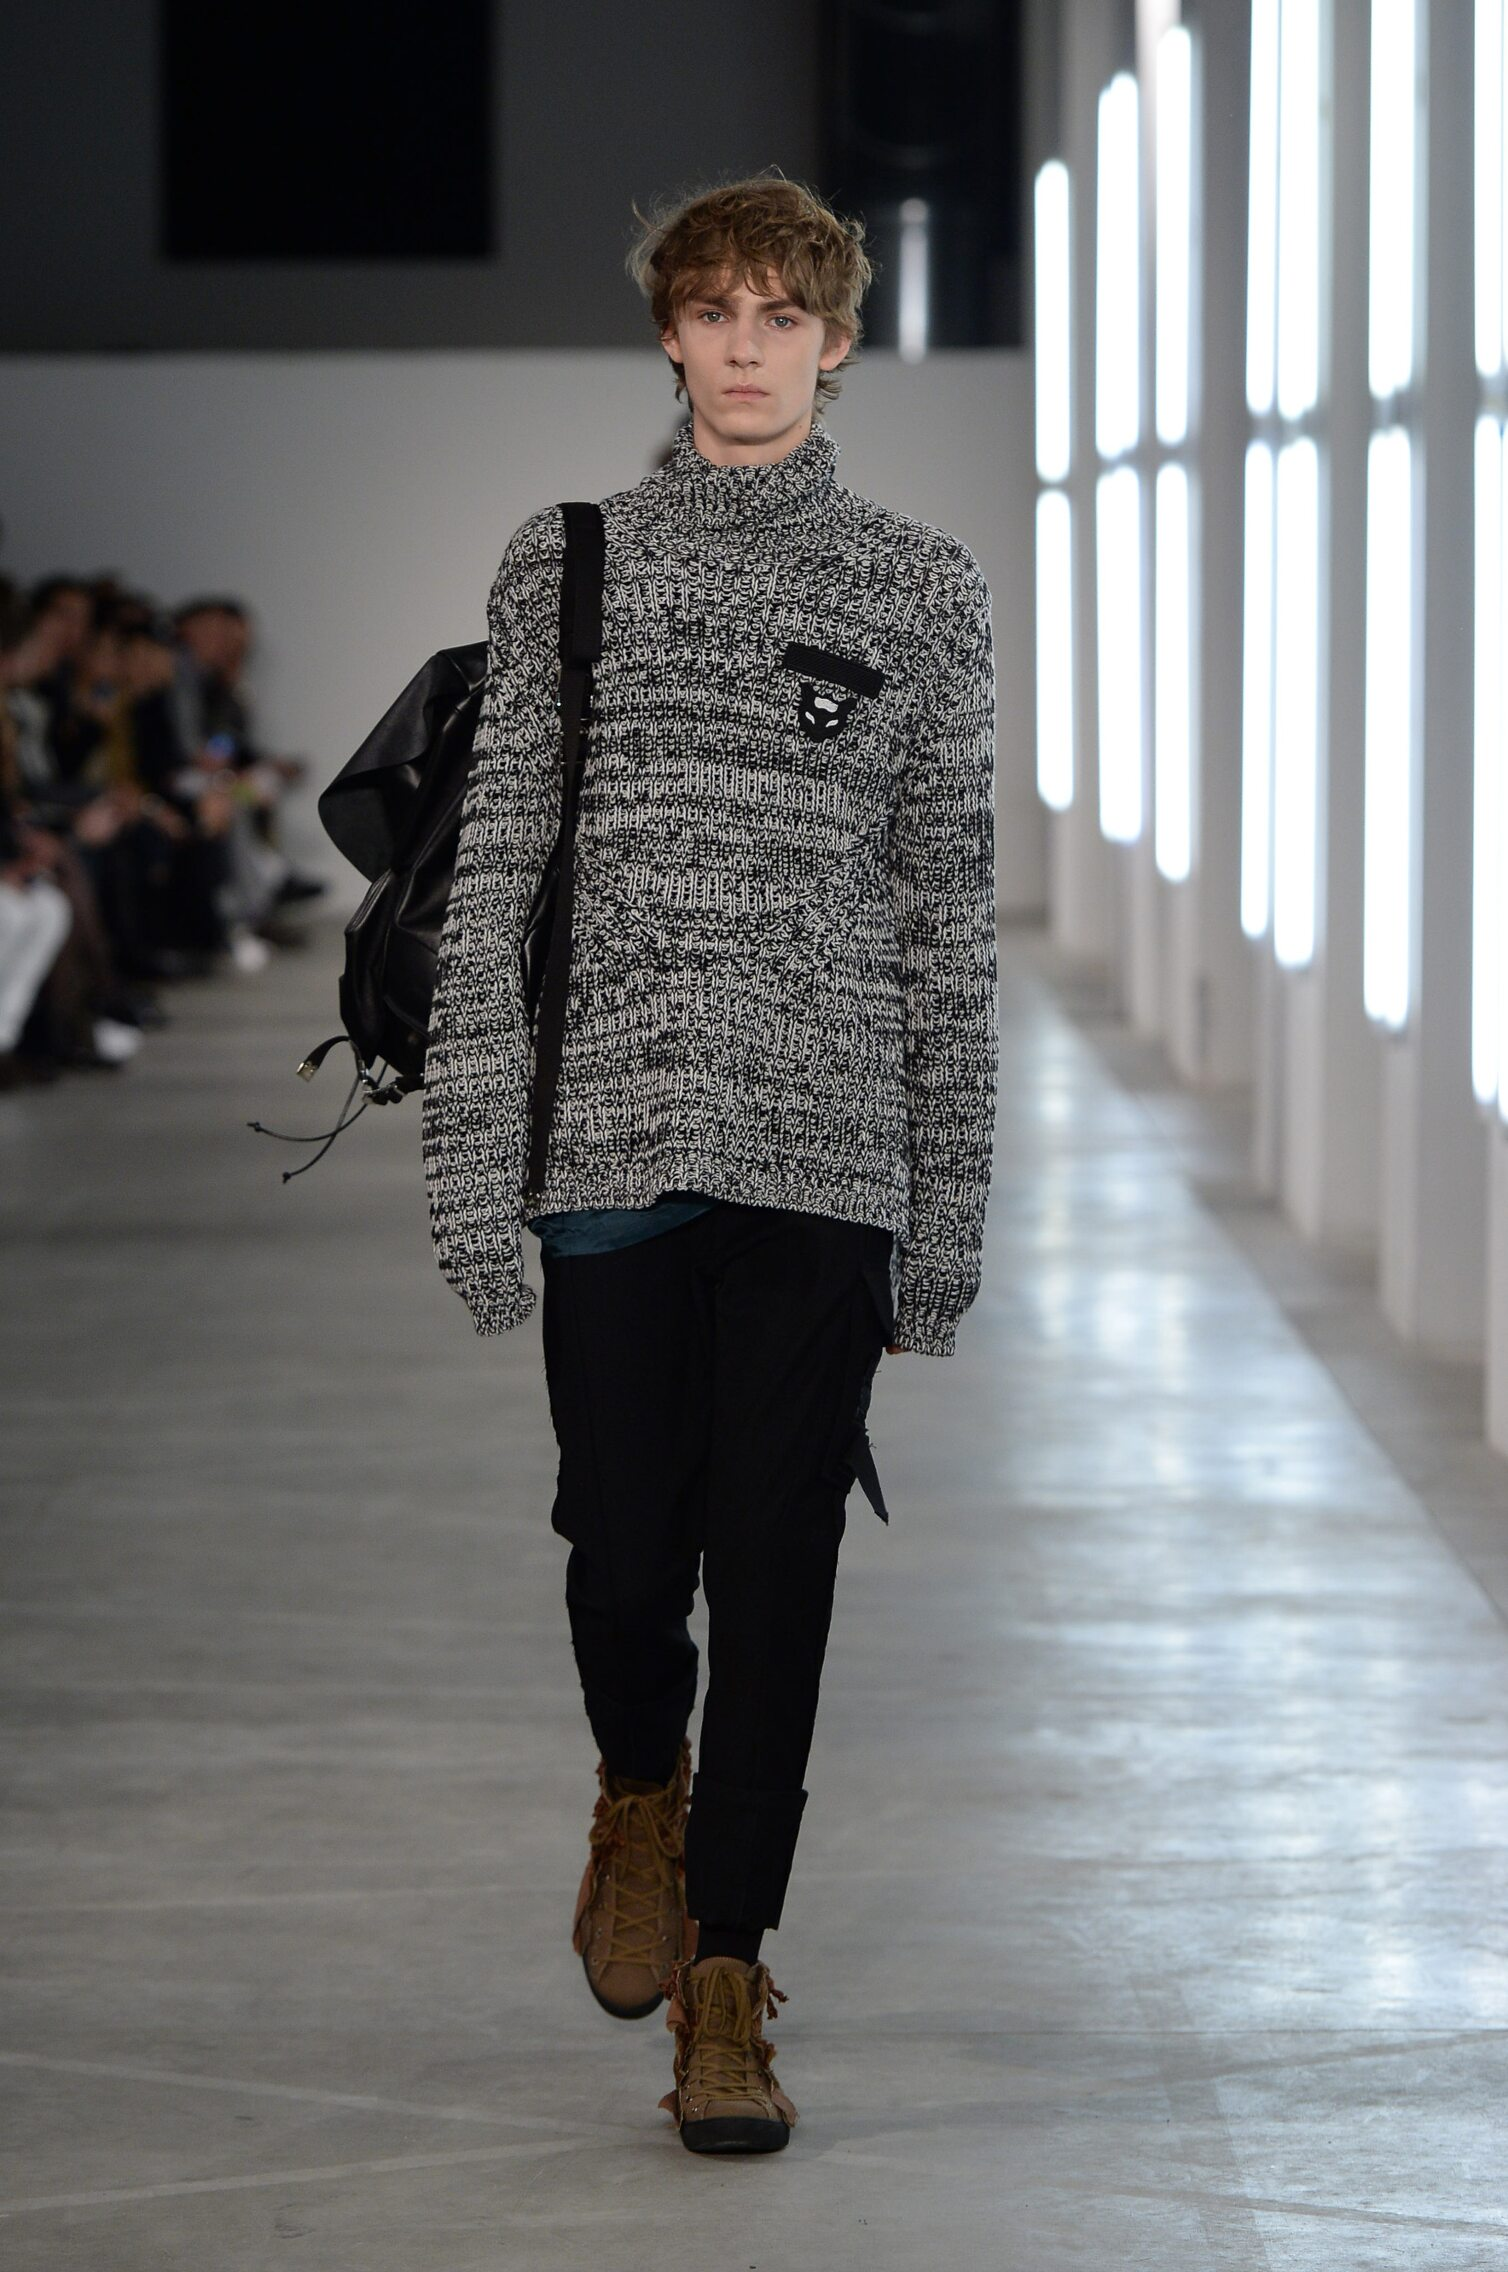 Catwalk N°21 Man Fashion Show Winter 2016